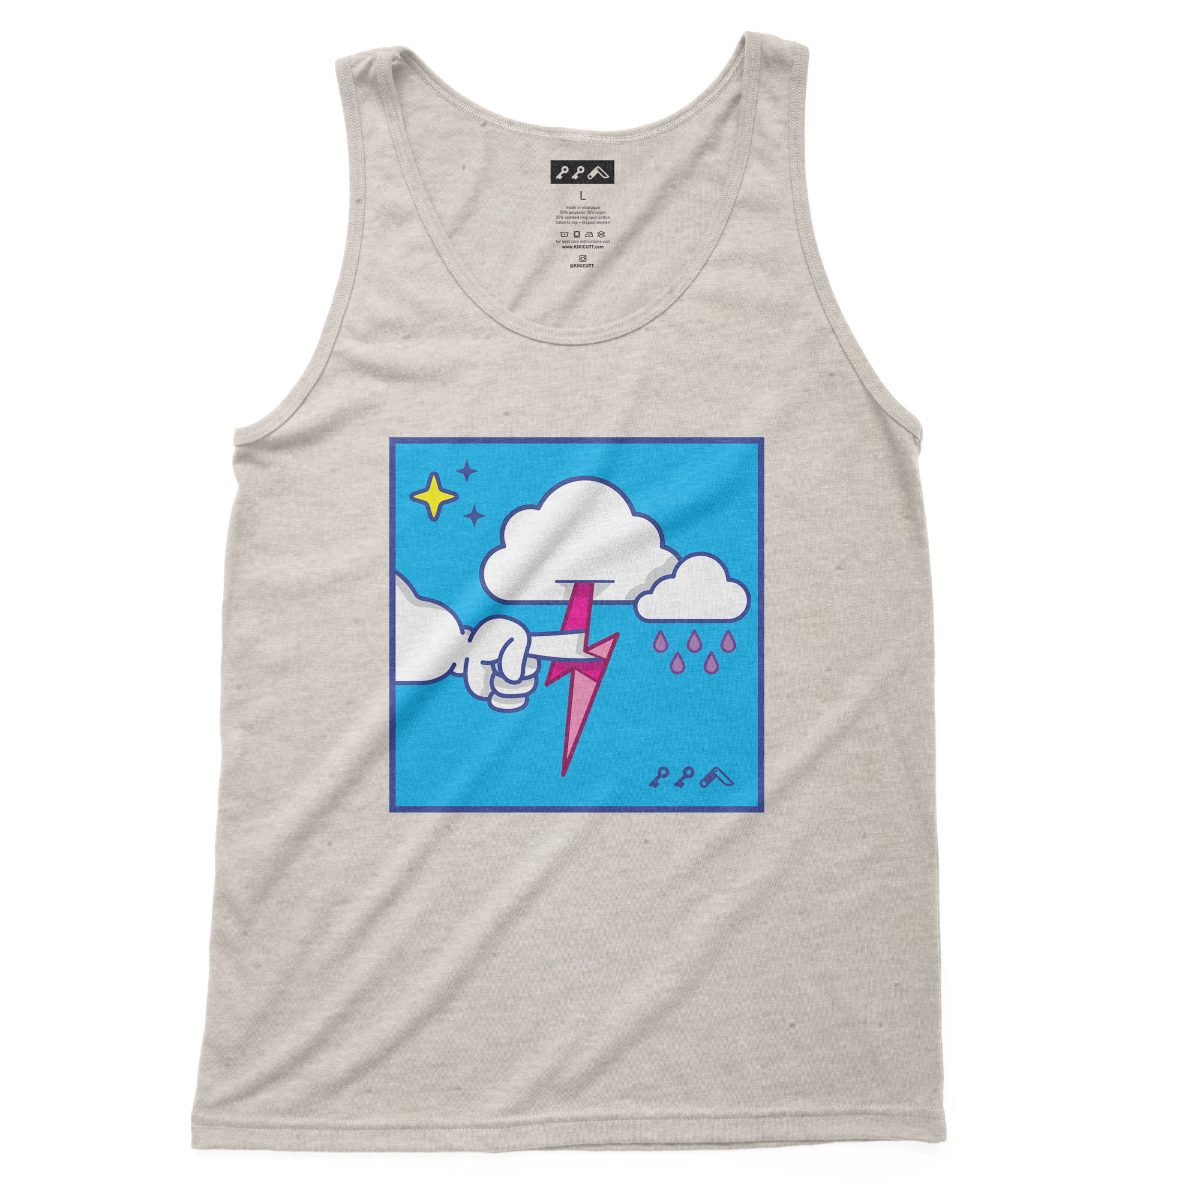 """""""MUTUAL CLOUDSENT"""" funny adult cartoon animation style tank top in oatmeal at kikicutt.com"""